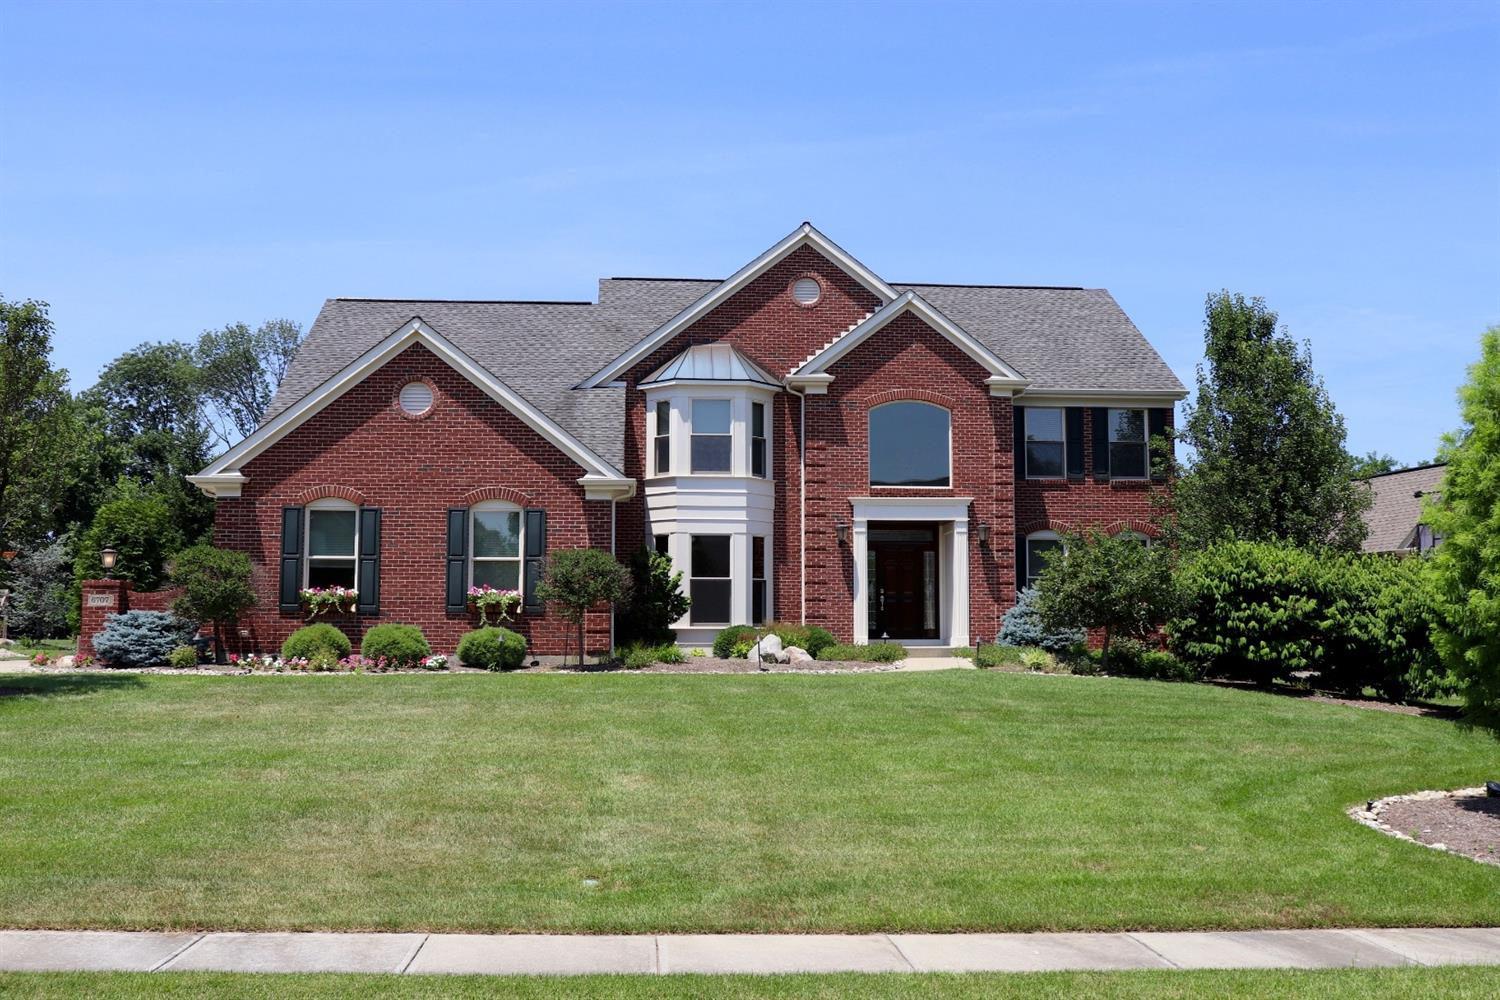 6707 Sandy Shores Dr Miami Twp. (East), OH